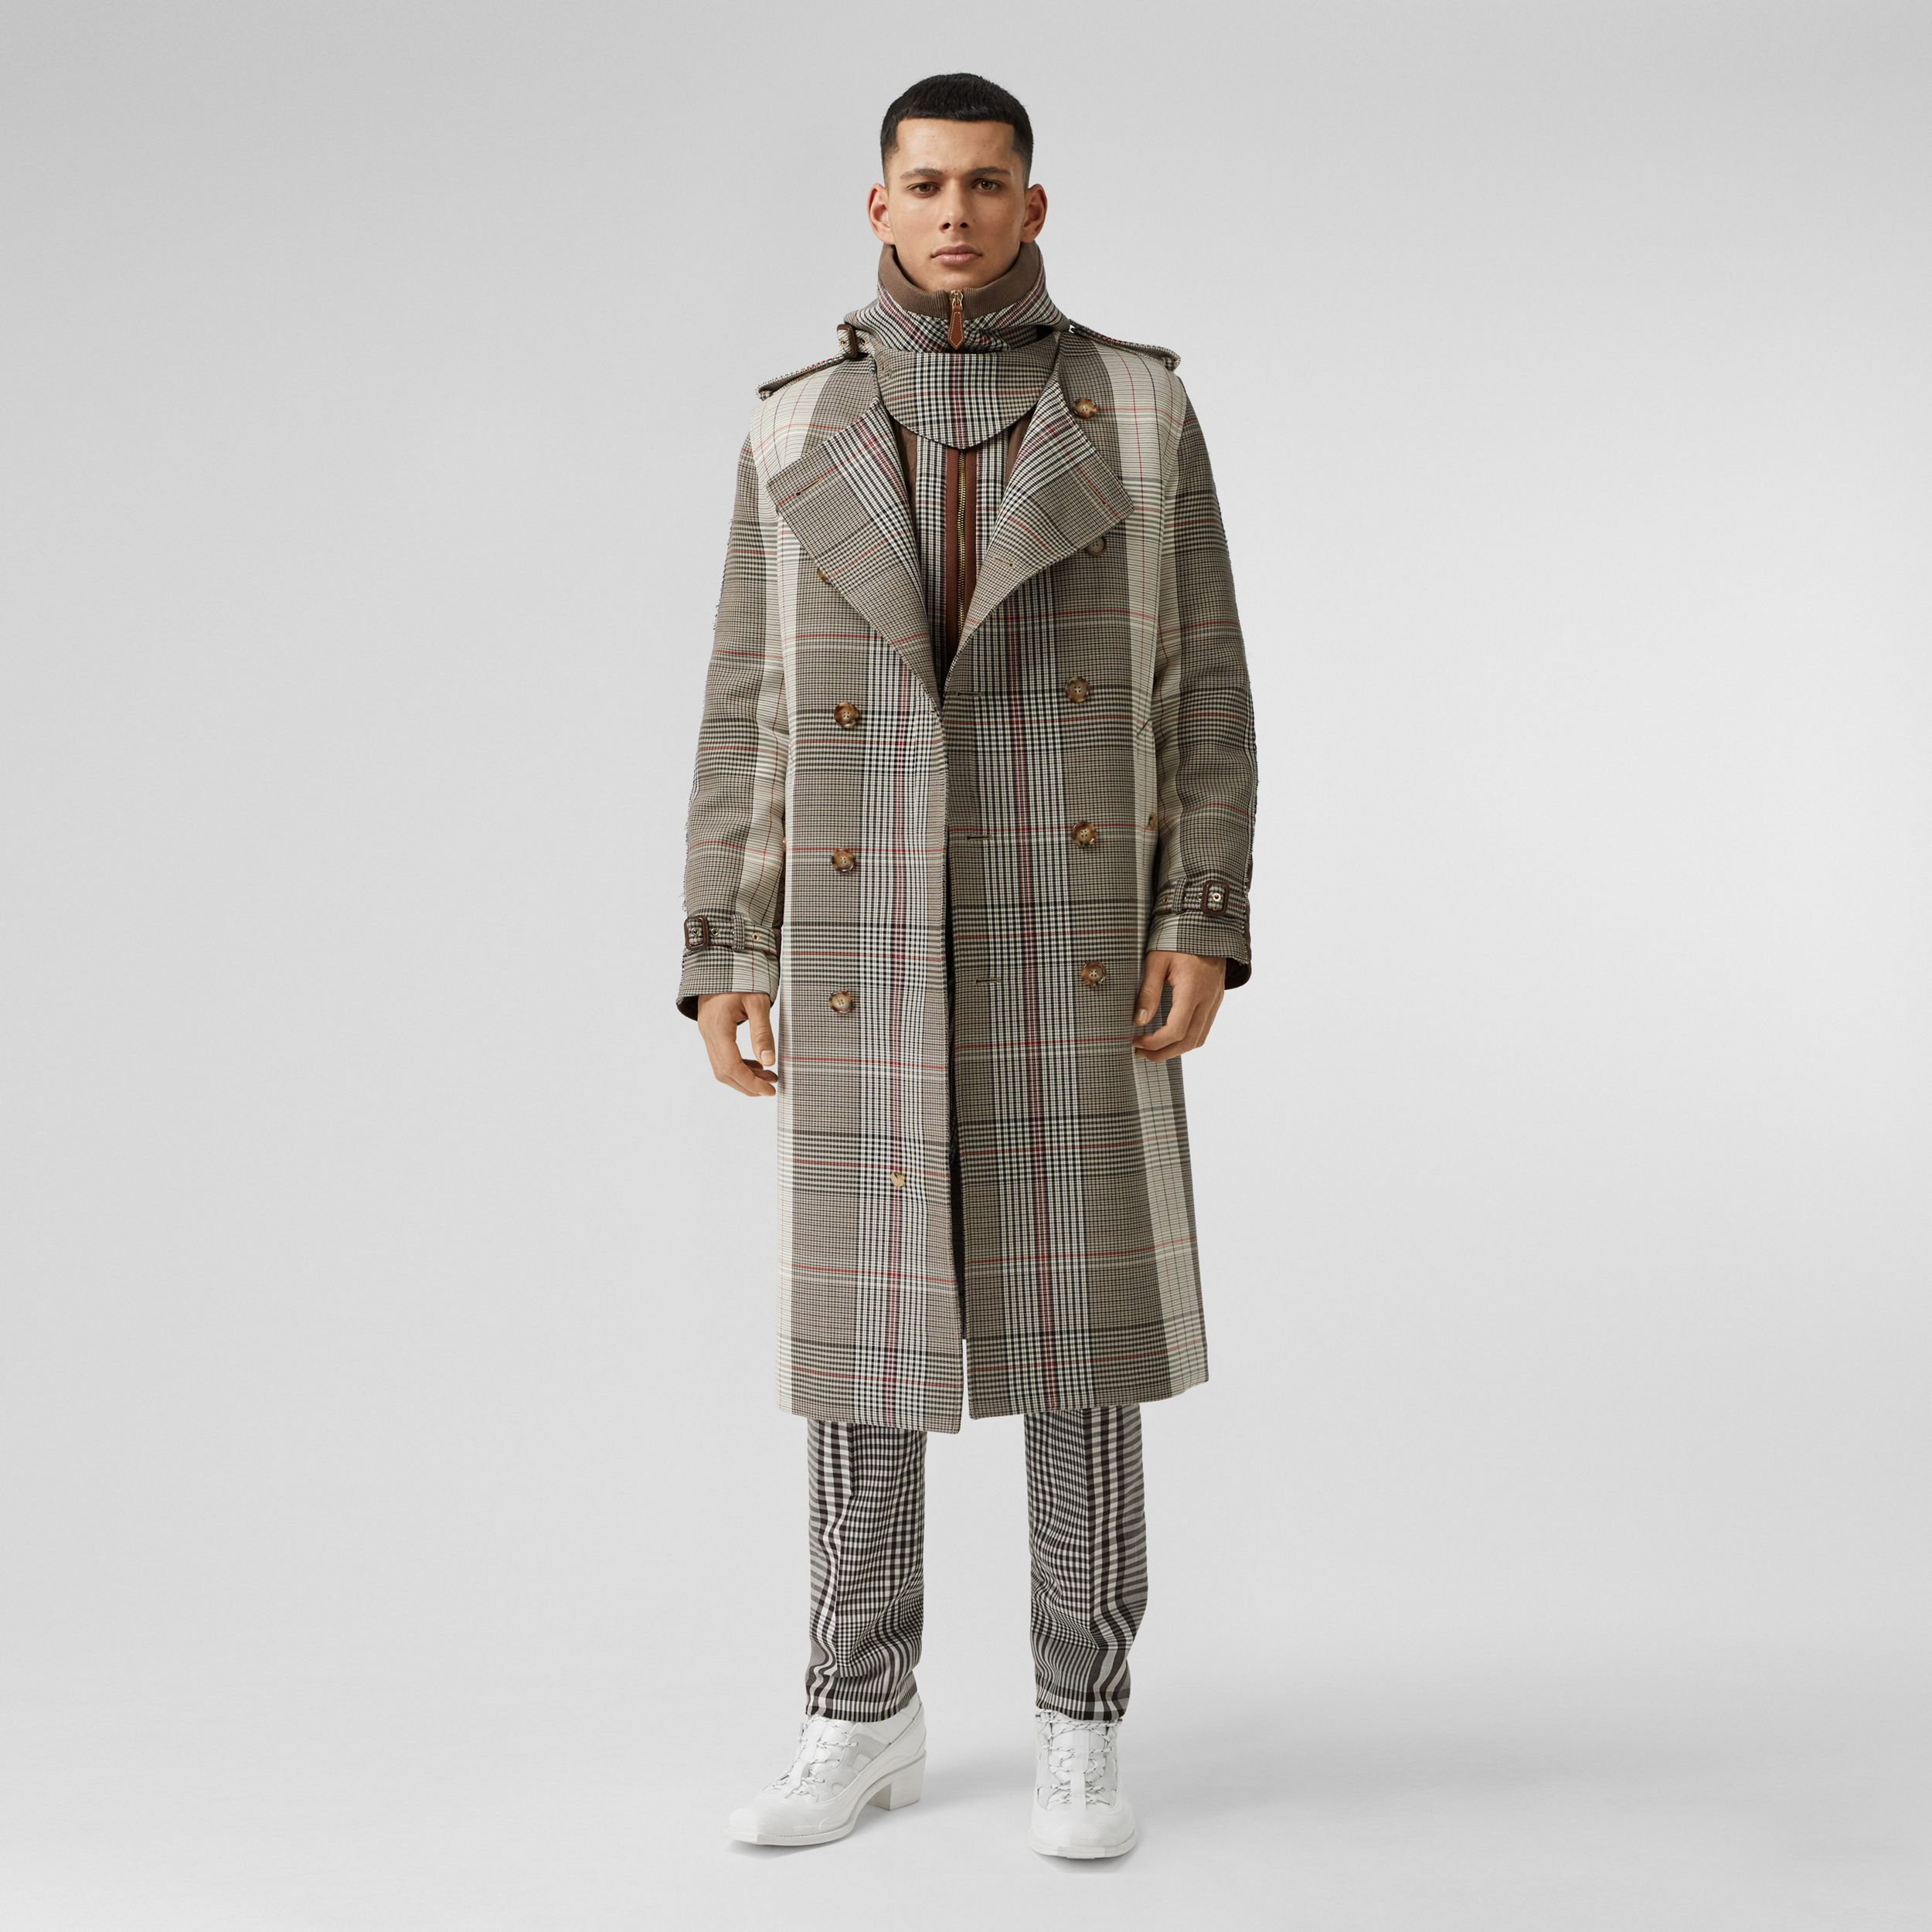 Quilted Panel Check Wool Cotton Trench Coat in Beige - Men | Burberry - 1